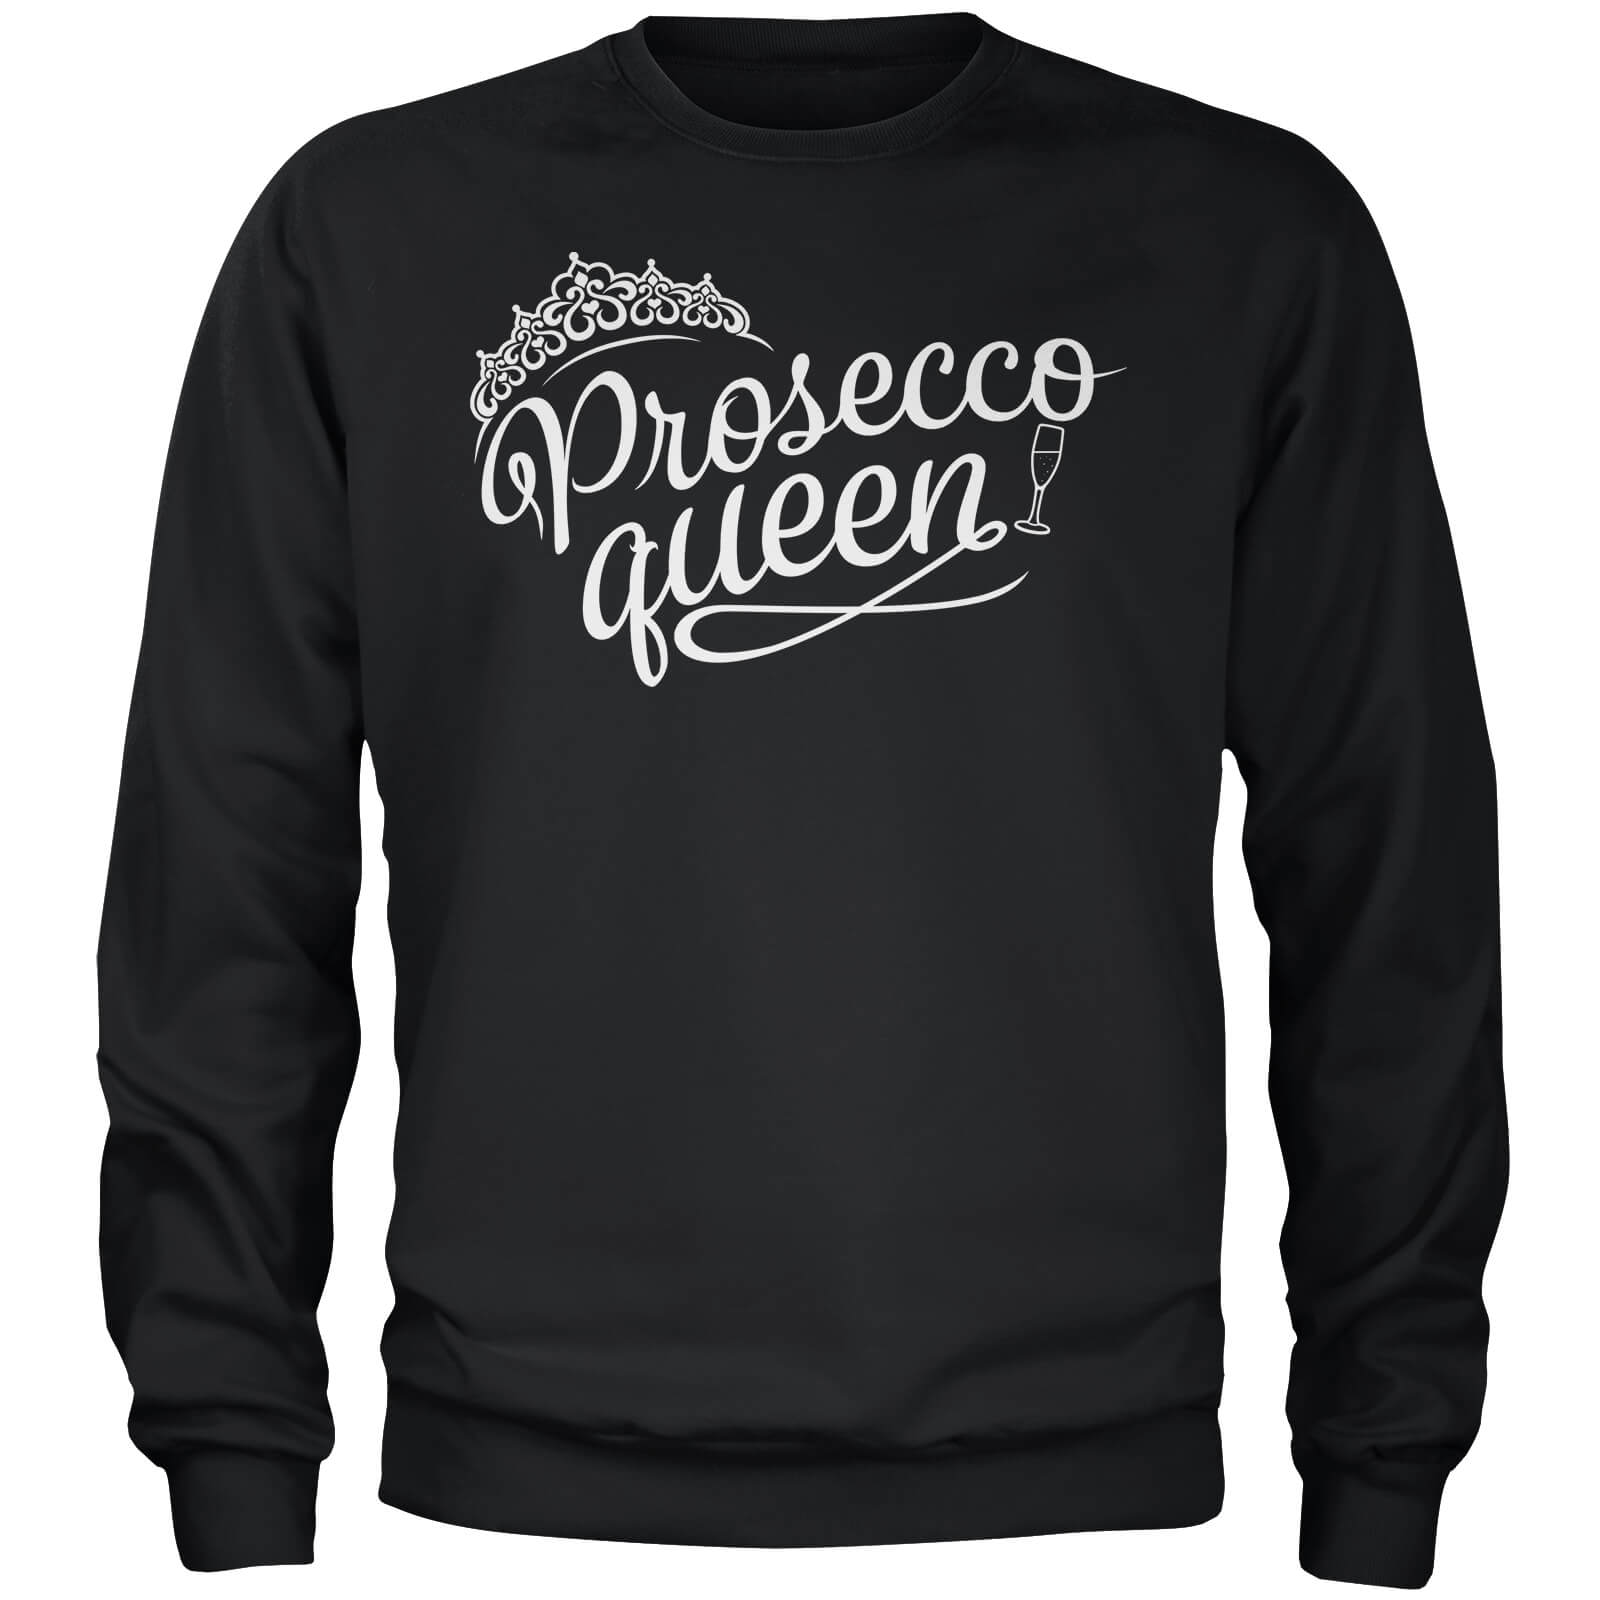 Prosecco Queen Black Sweatshirt